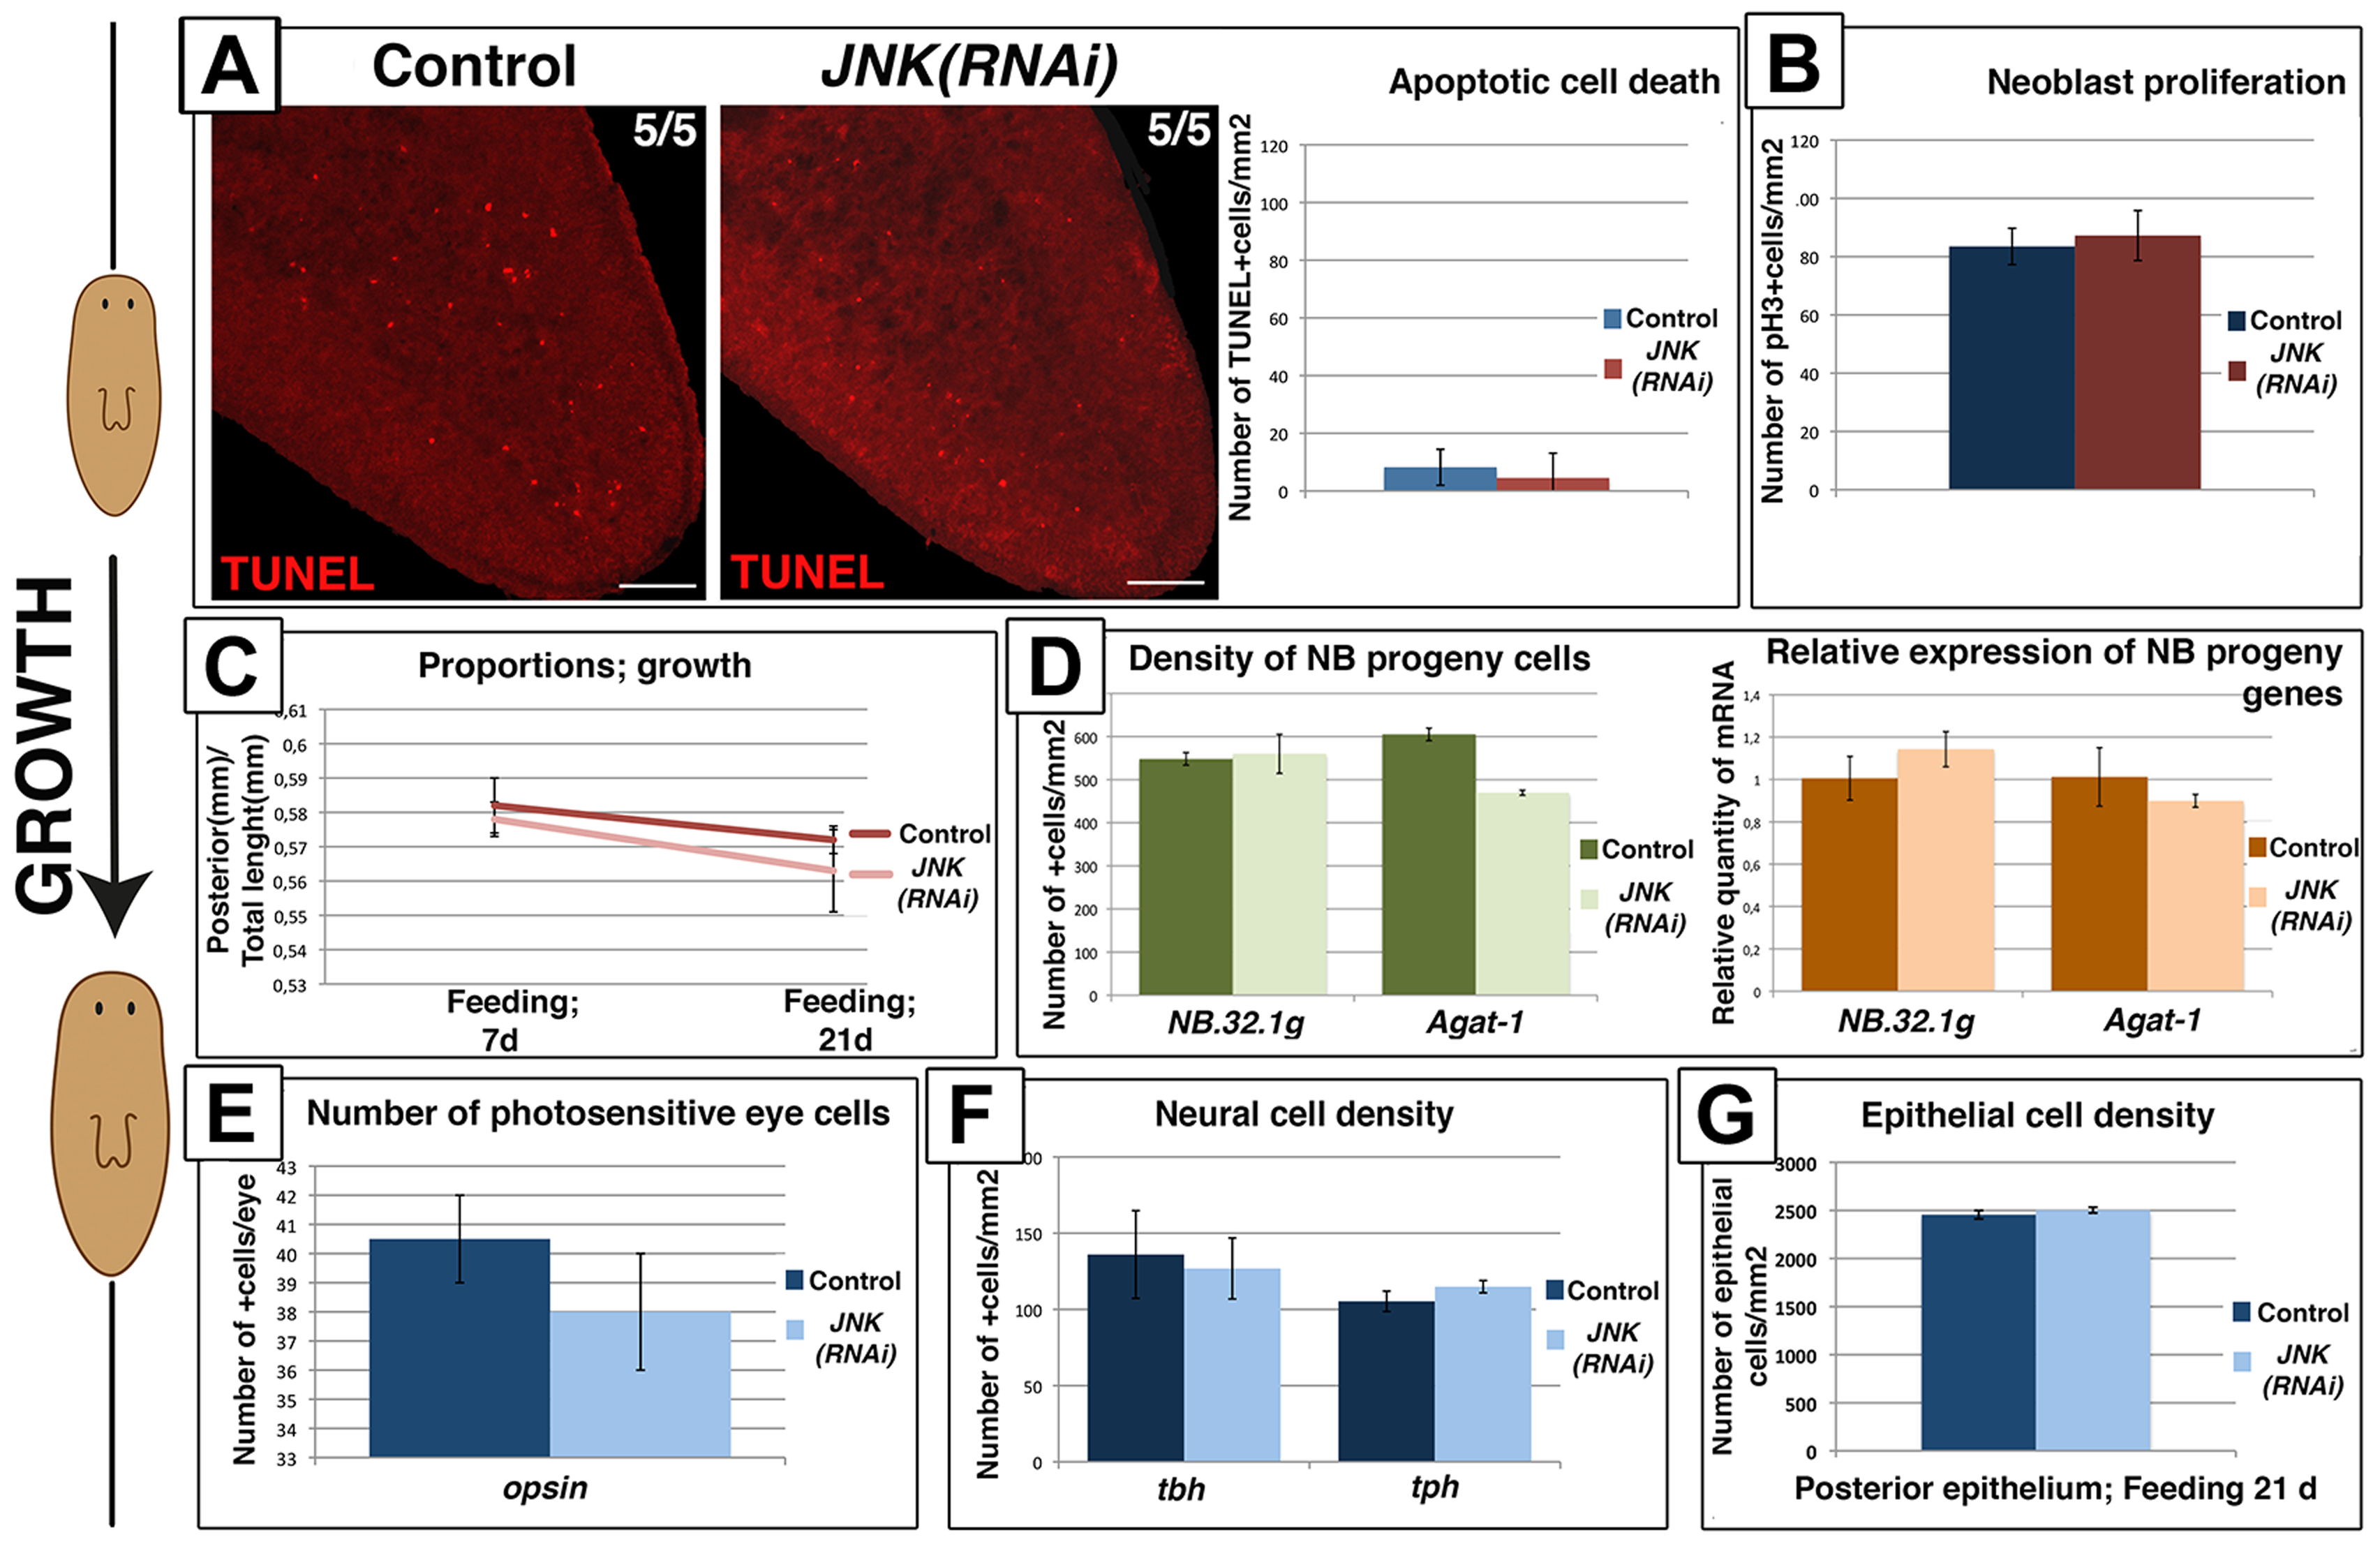 Remodeling during growth does not depend on JNK-dependent apoptotic cell death.